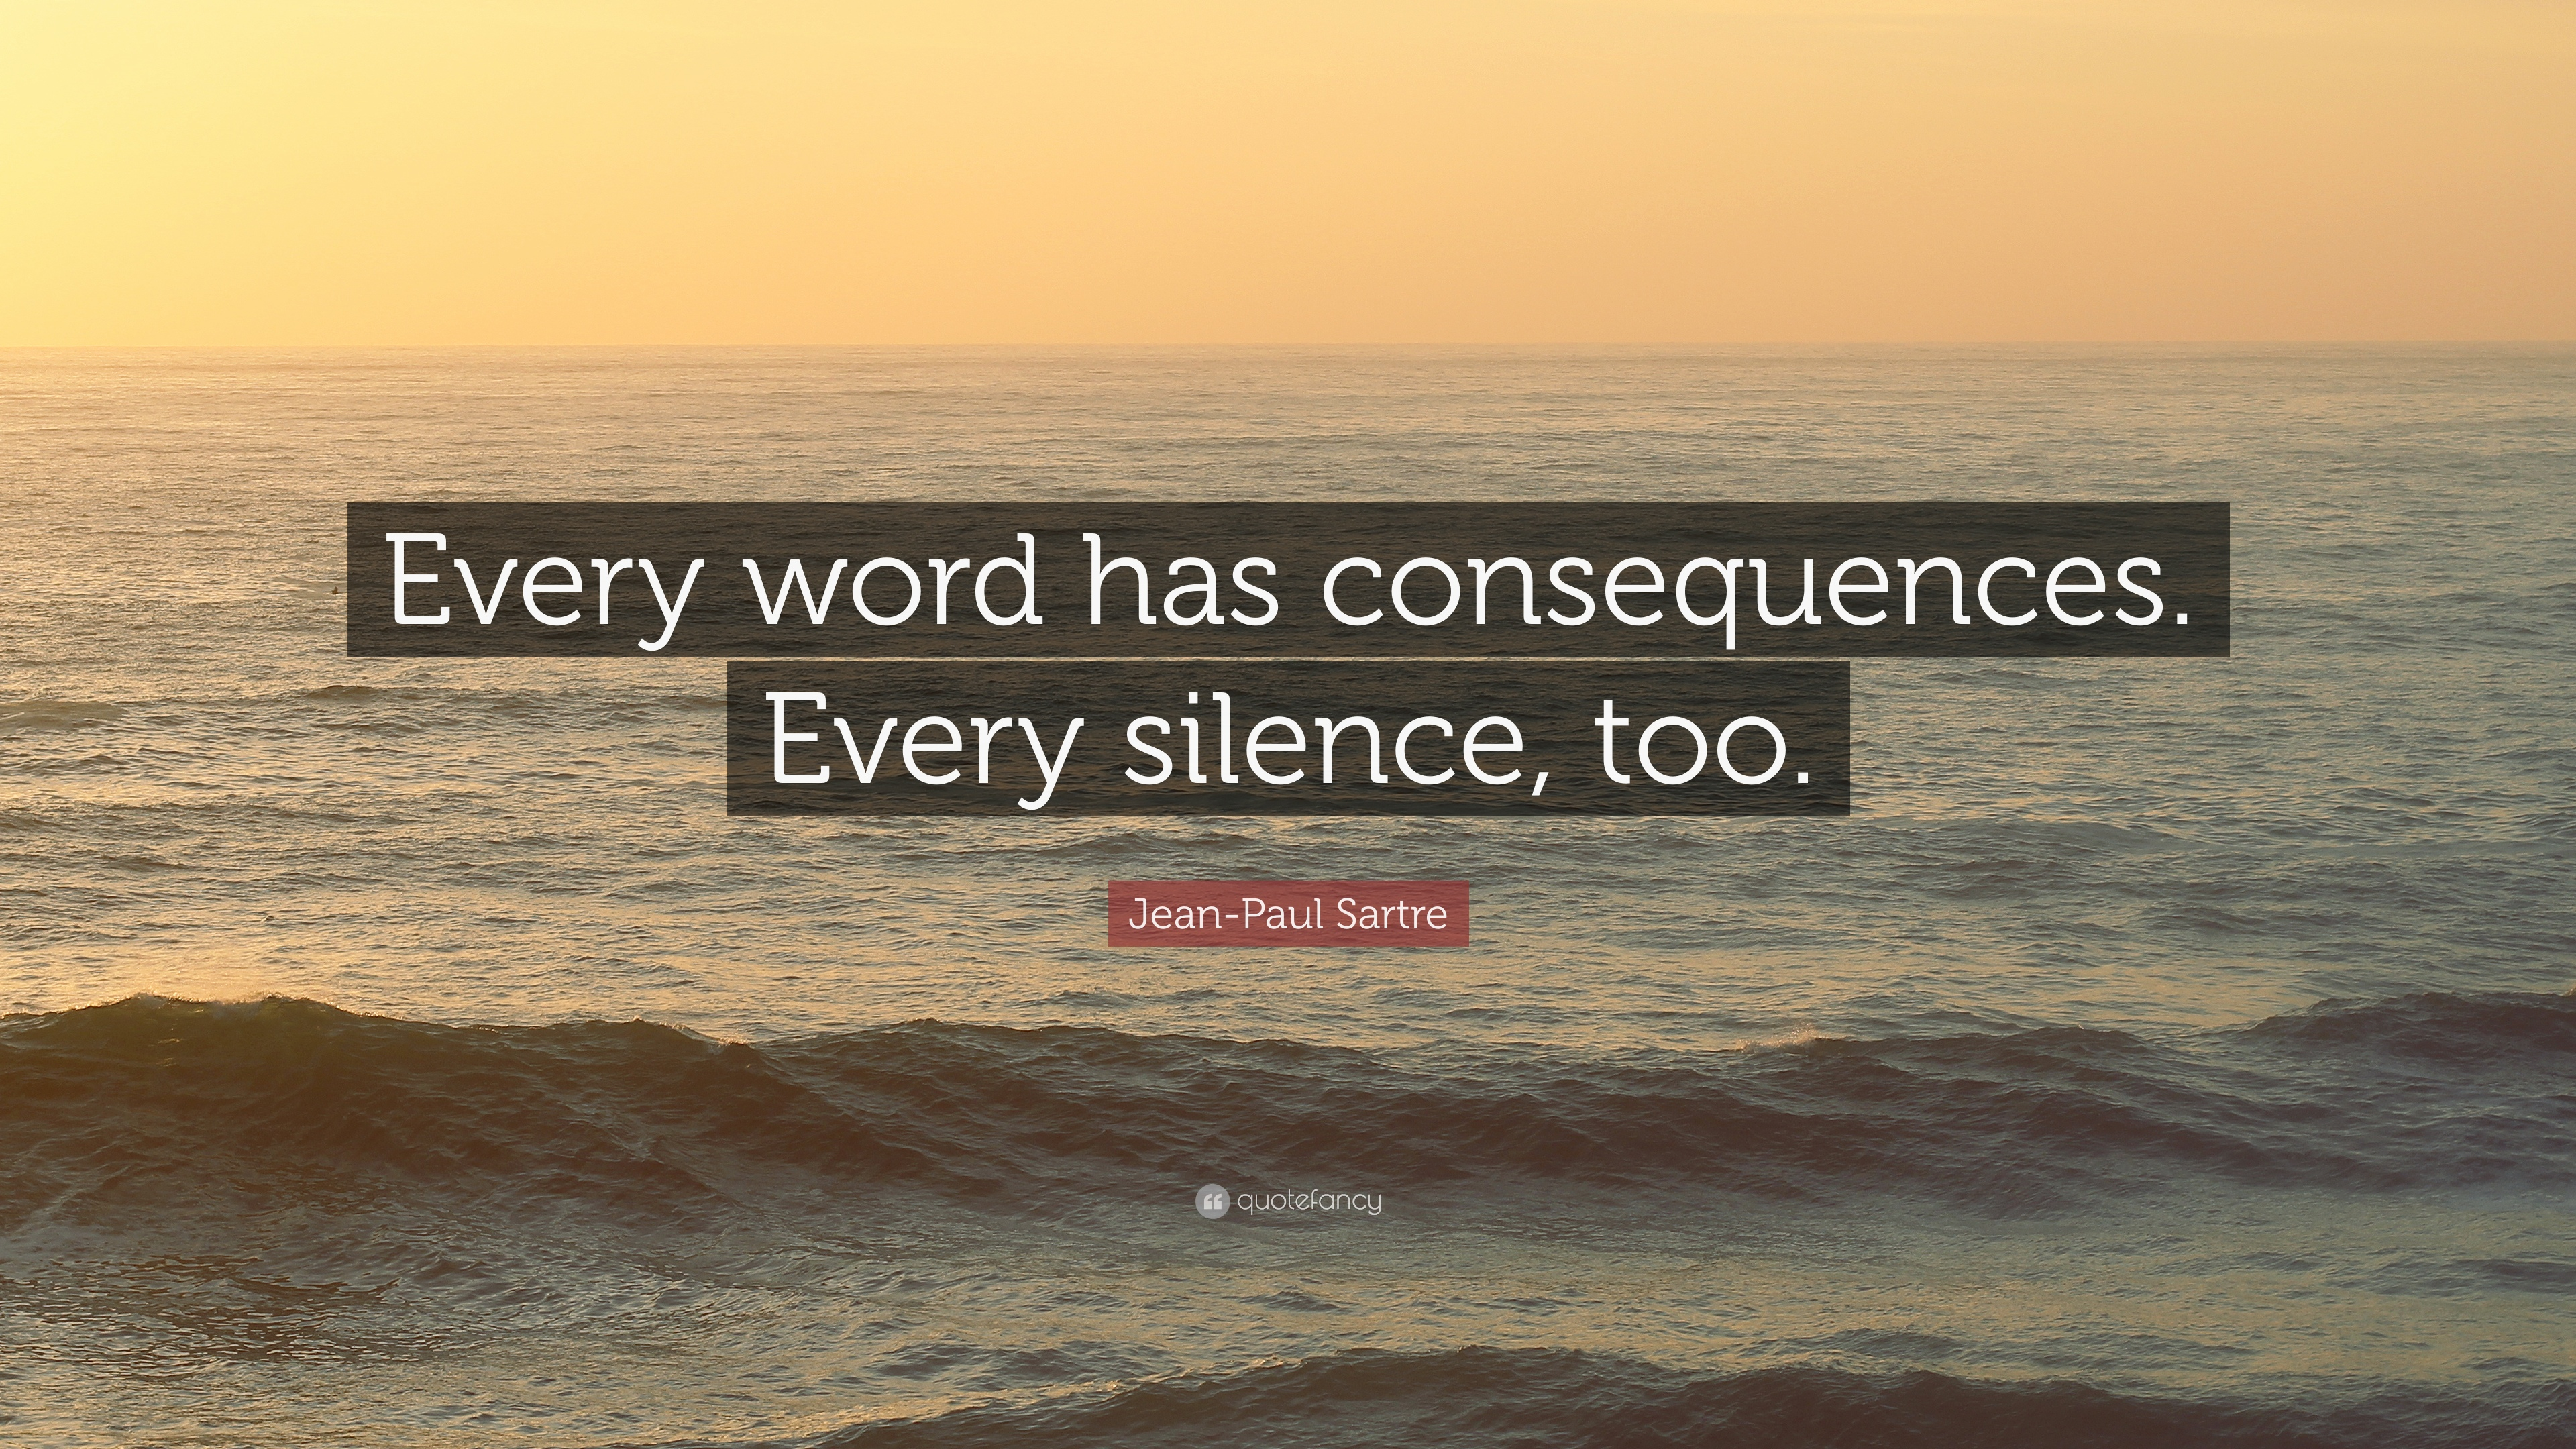 1720769-Jean-Paul-Sartre-Quote-Every-word-has-consequences-Every-silence.jpg